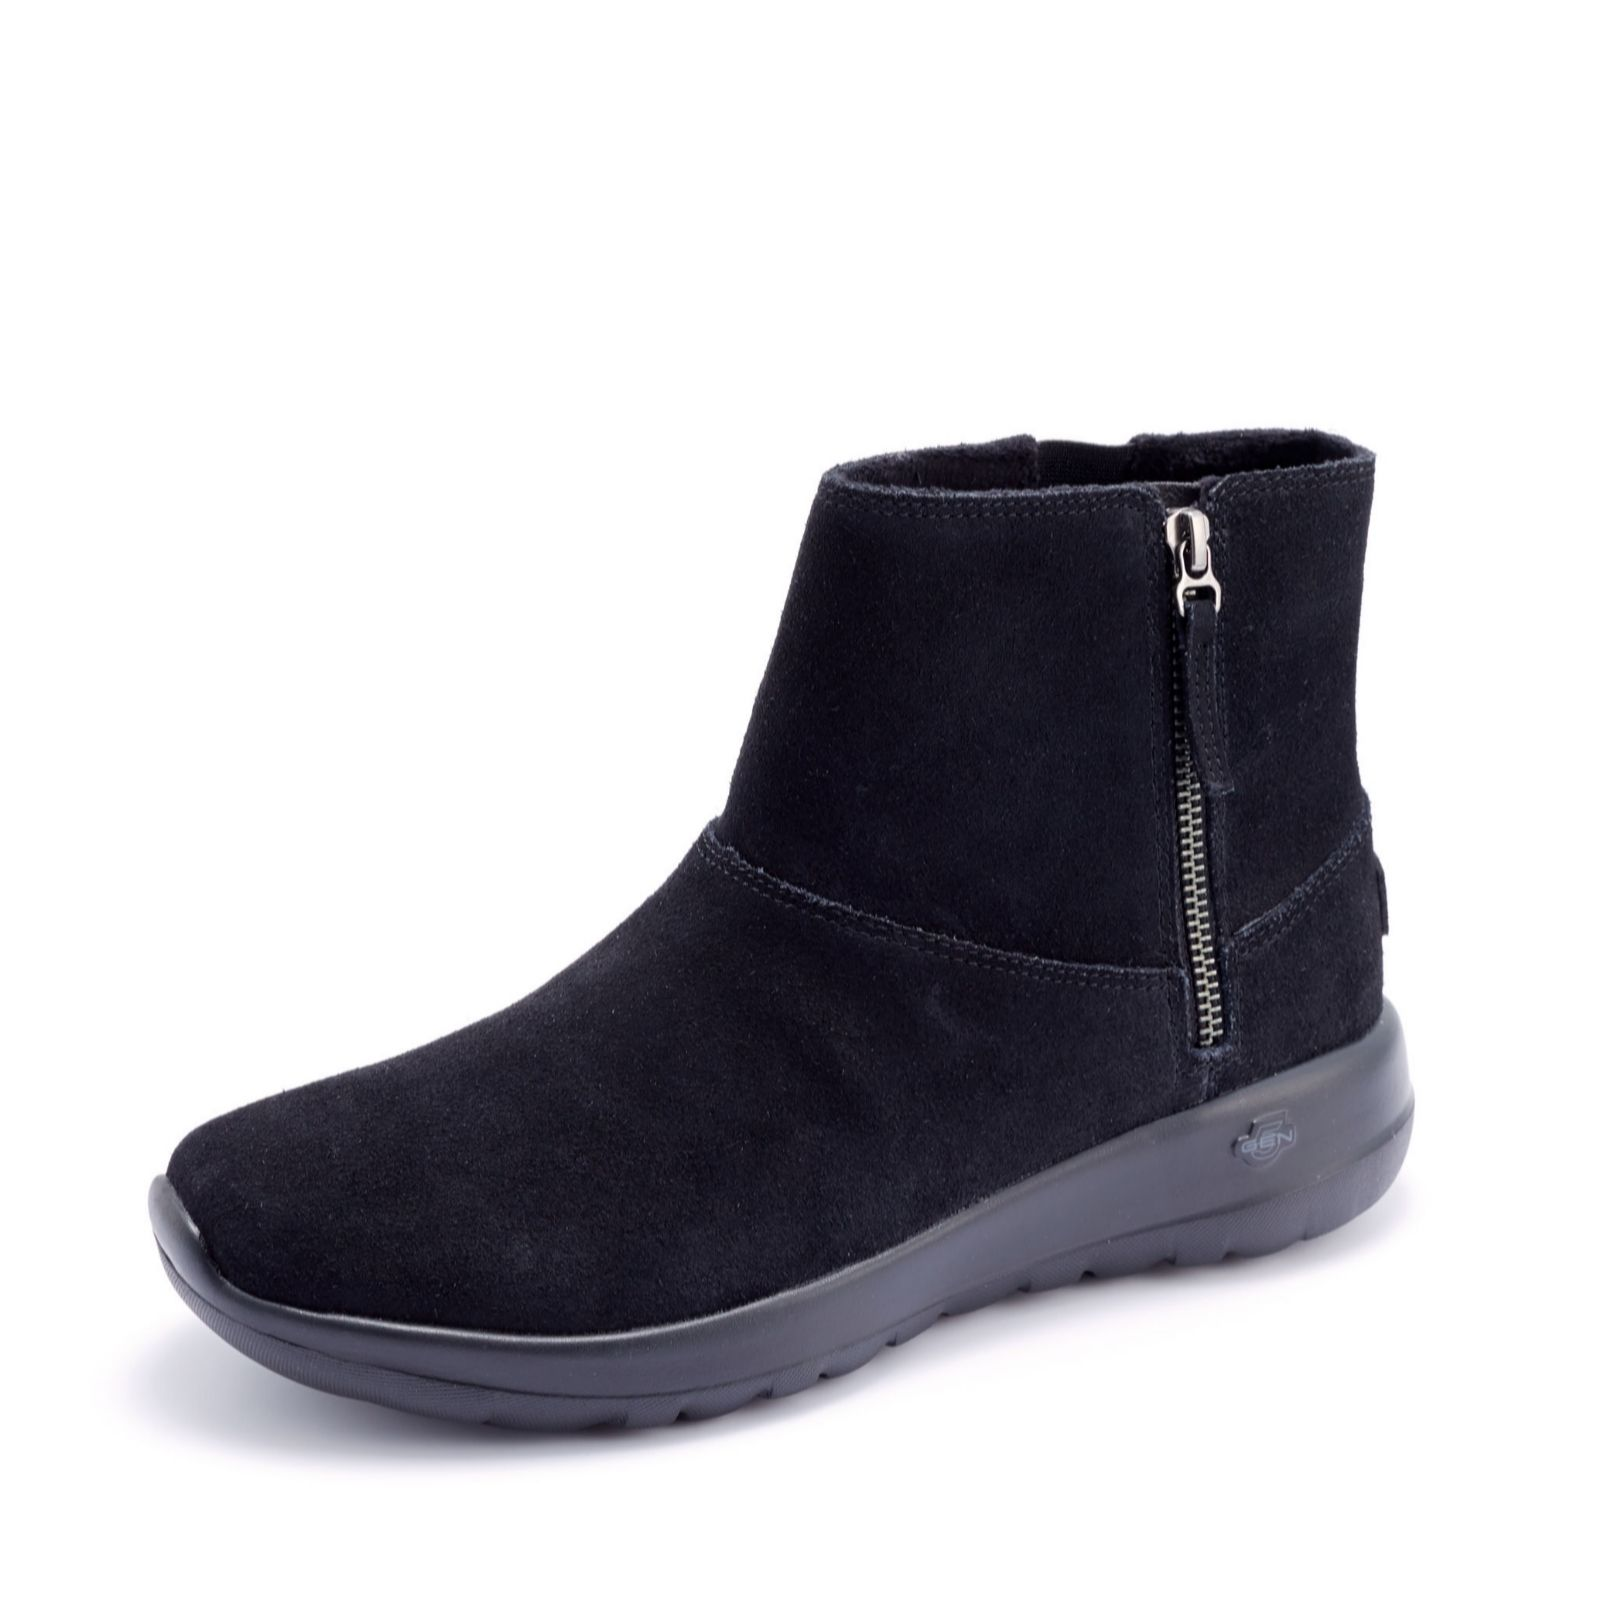 8c5bf35d0c1 Skechers Suede Zip Ankle Boot with Faux Fur - QVC UK